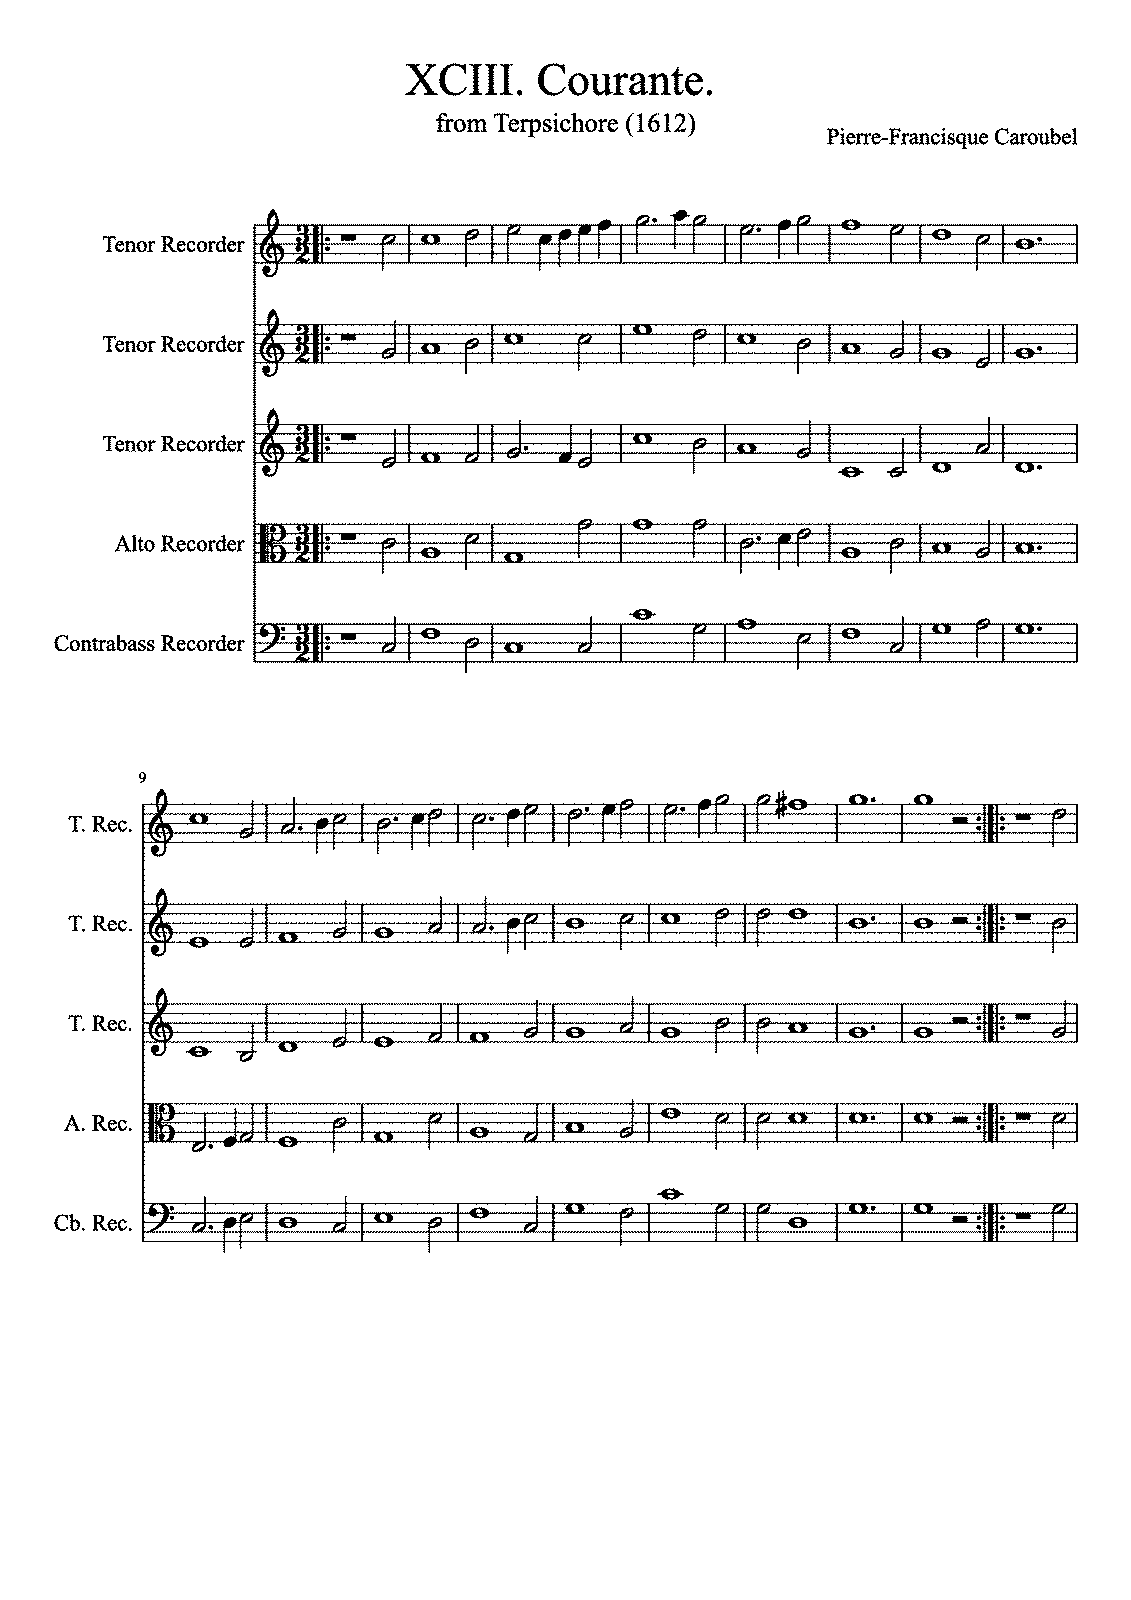 PMLP591730-XCIII Courante from Terpsichore Francisque Caroubel 1612.pdf